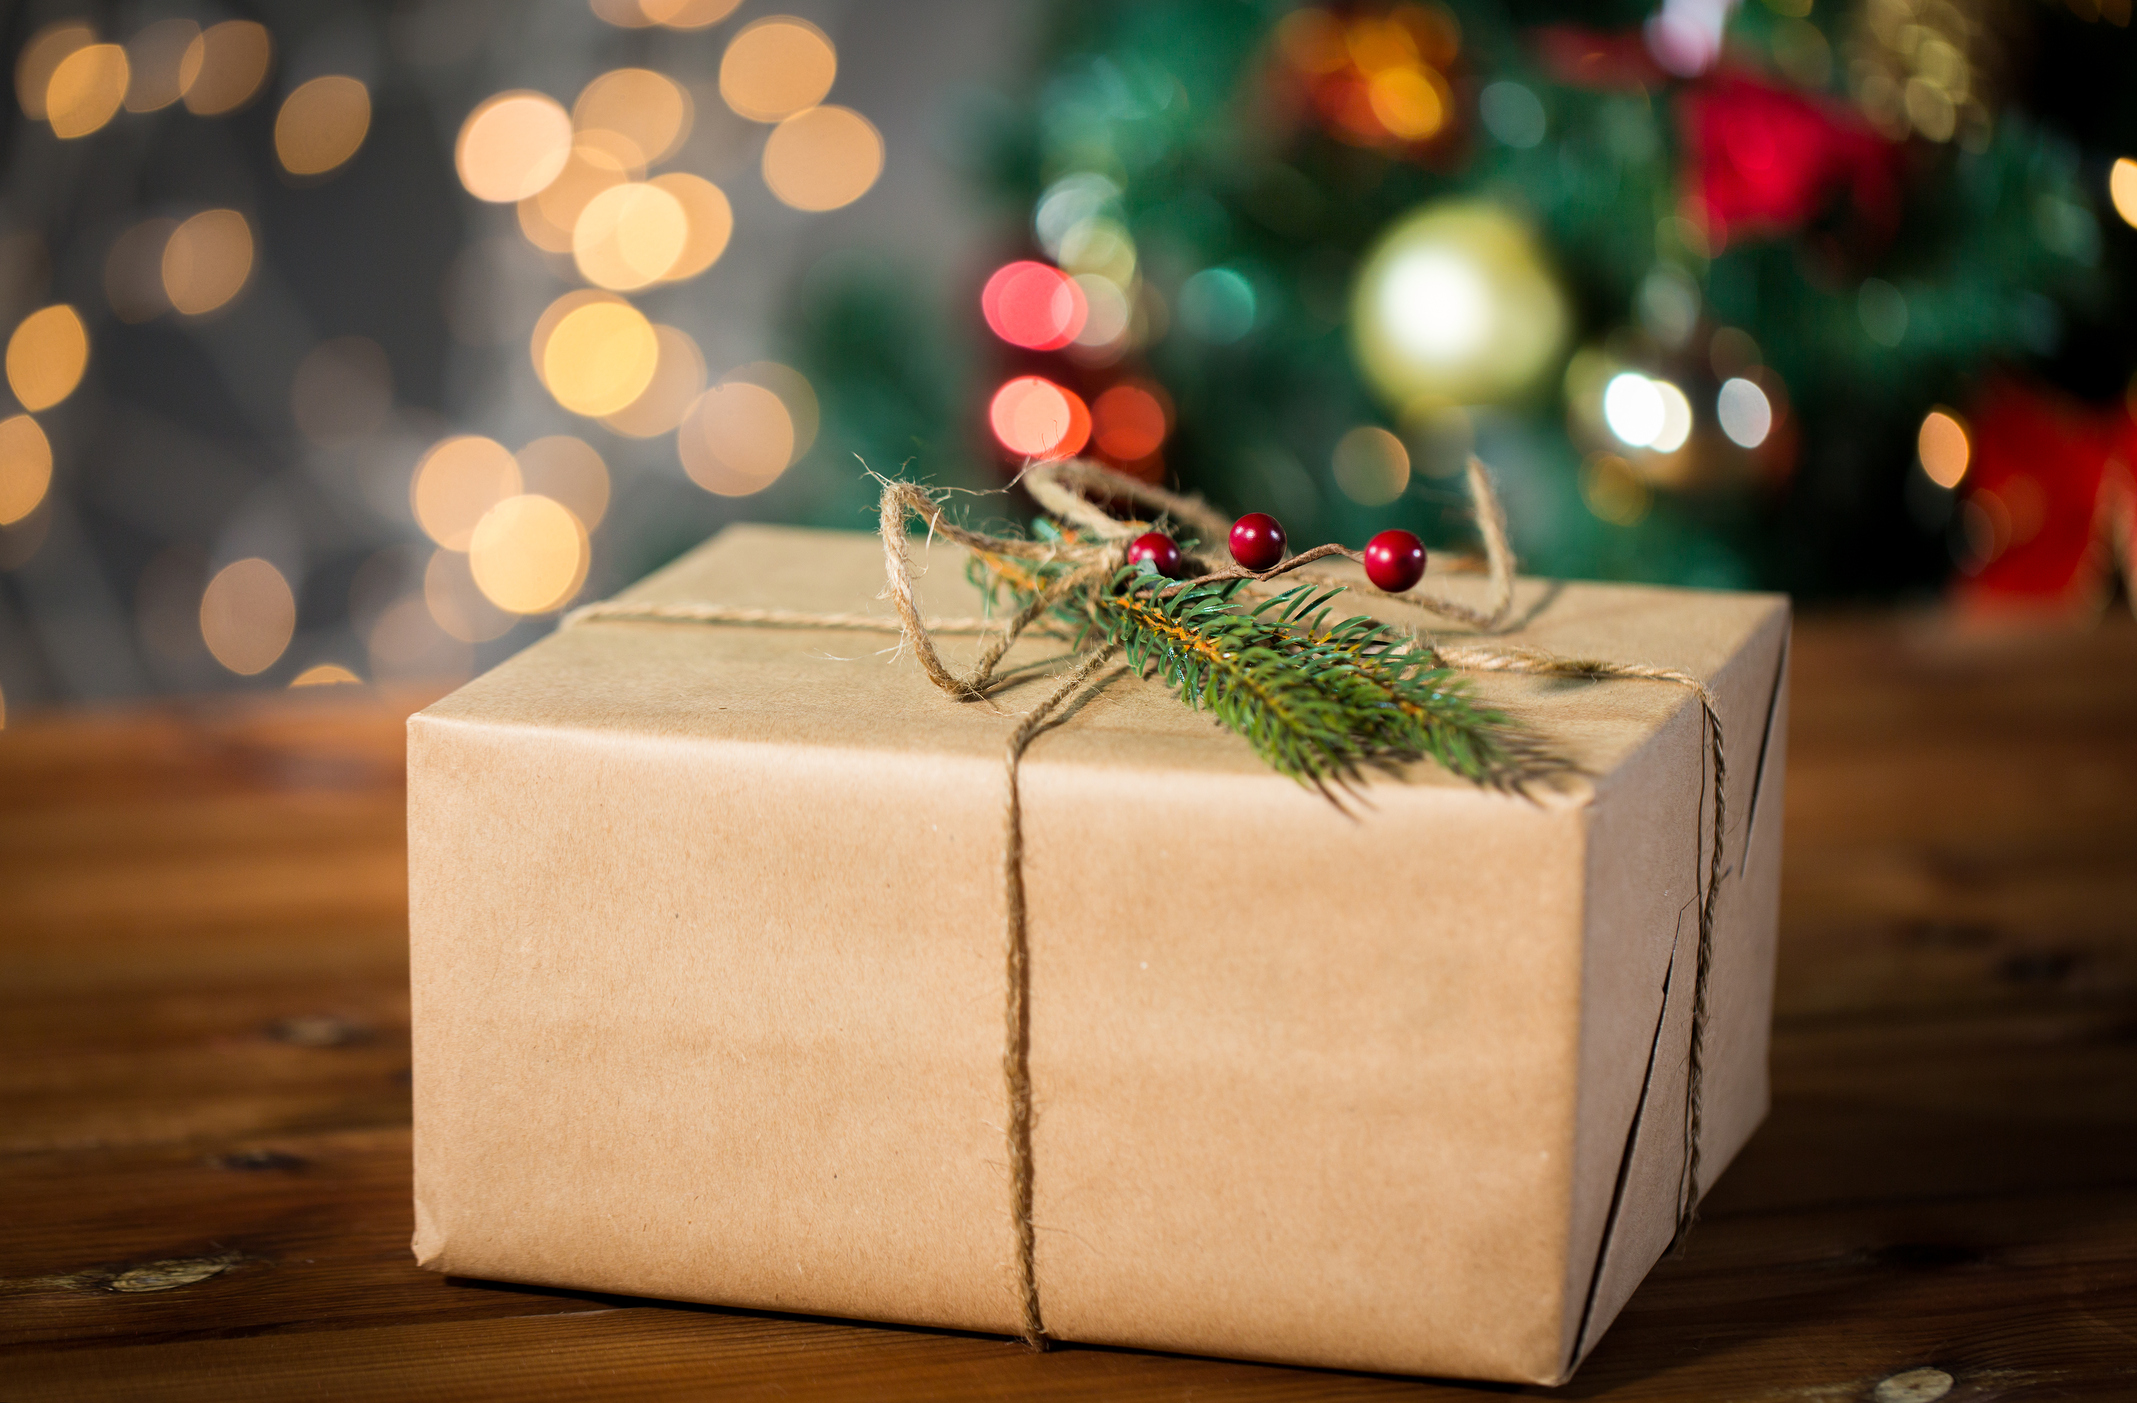 How to Stay Ahead of Holiday Parcel Shipping Pitfalls